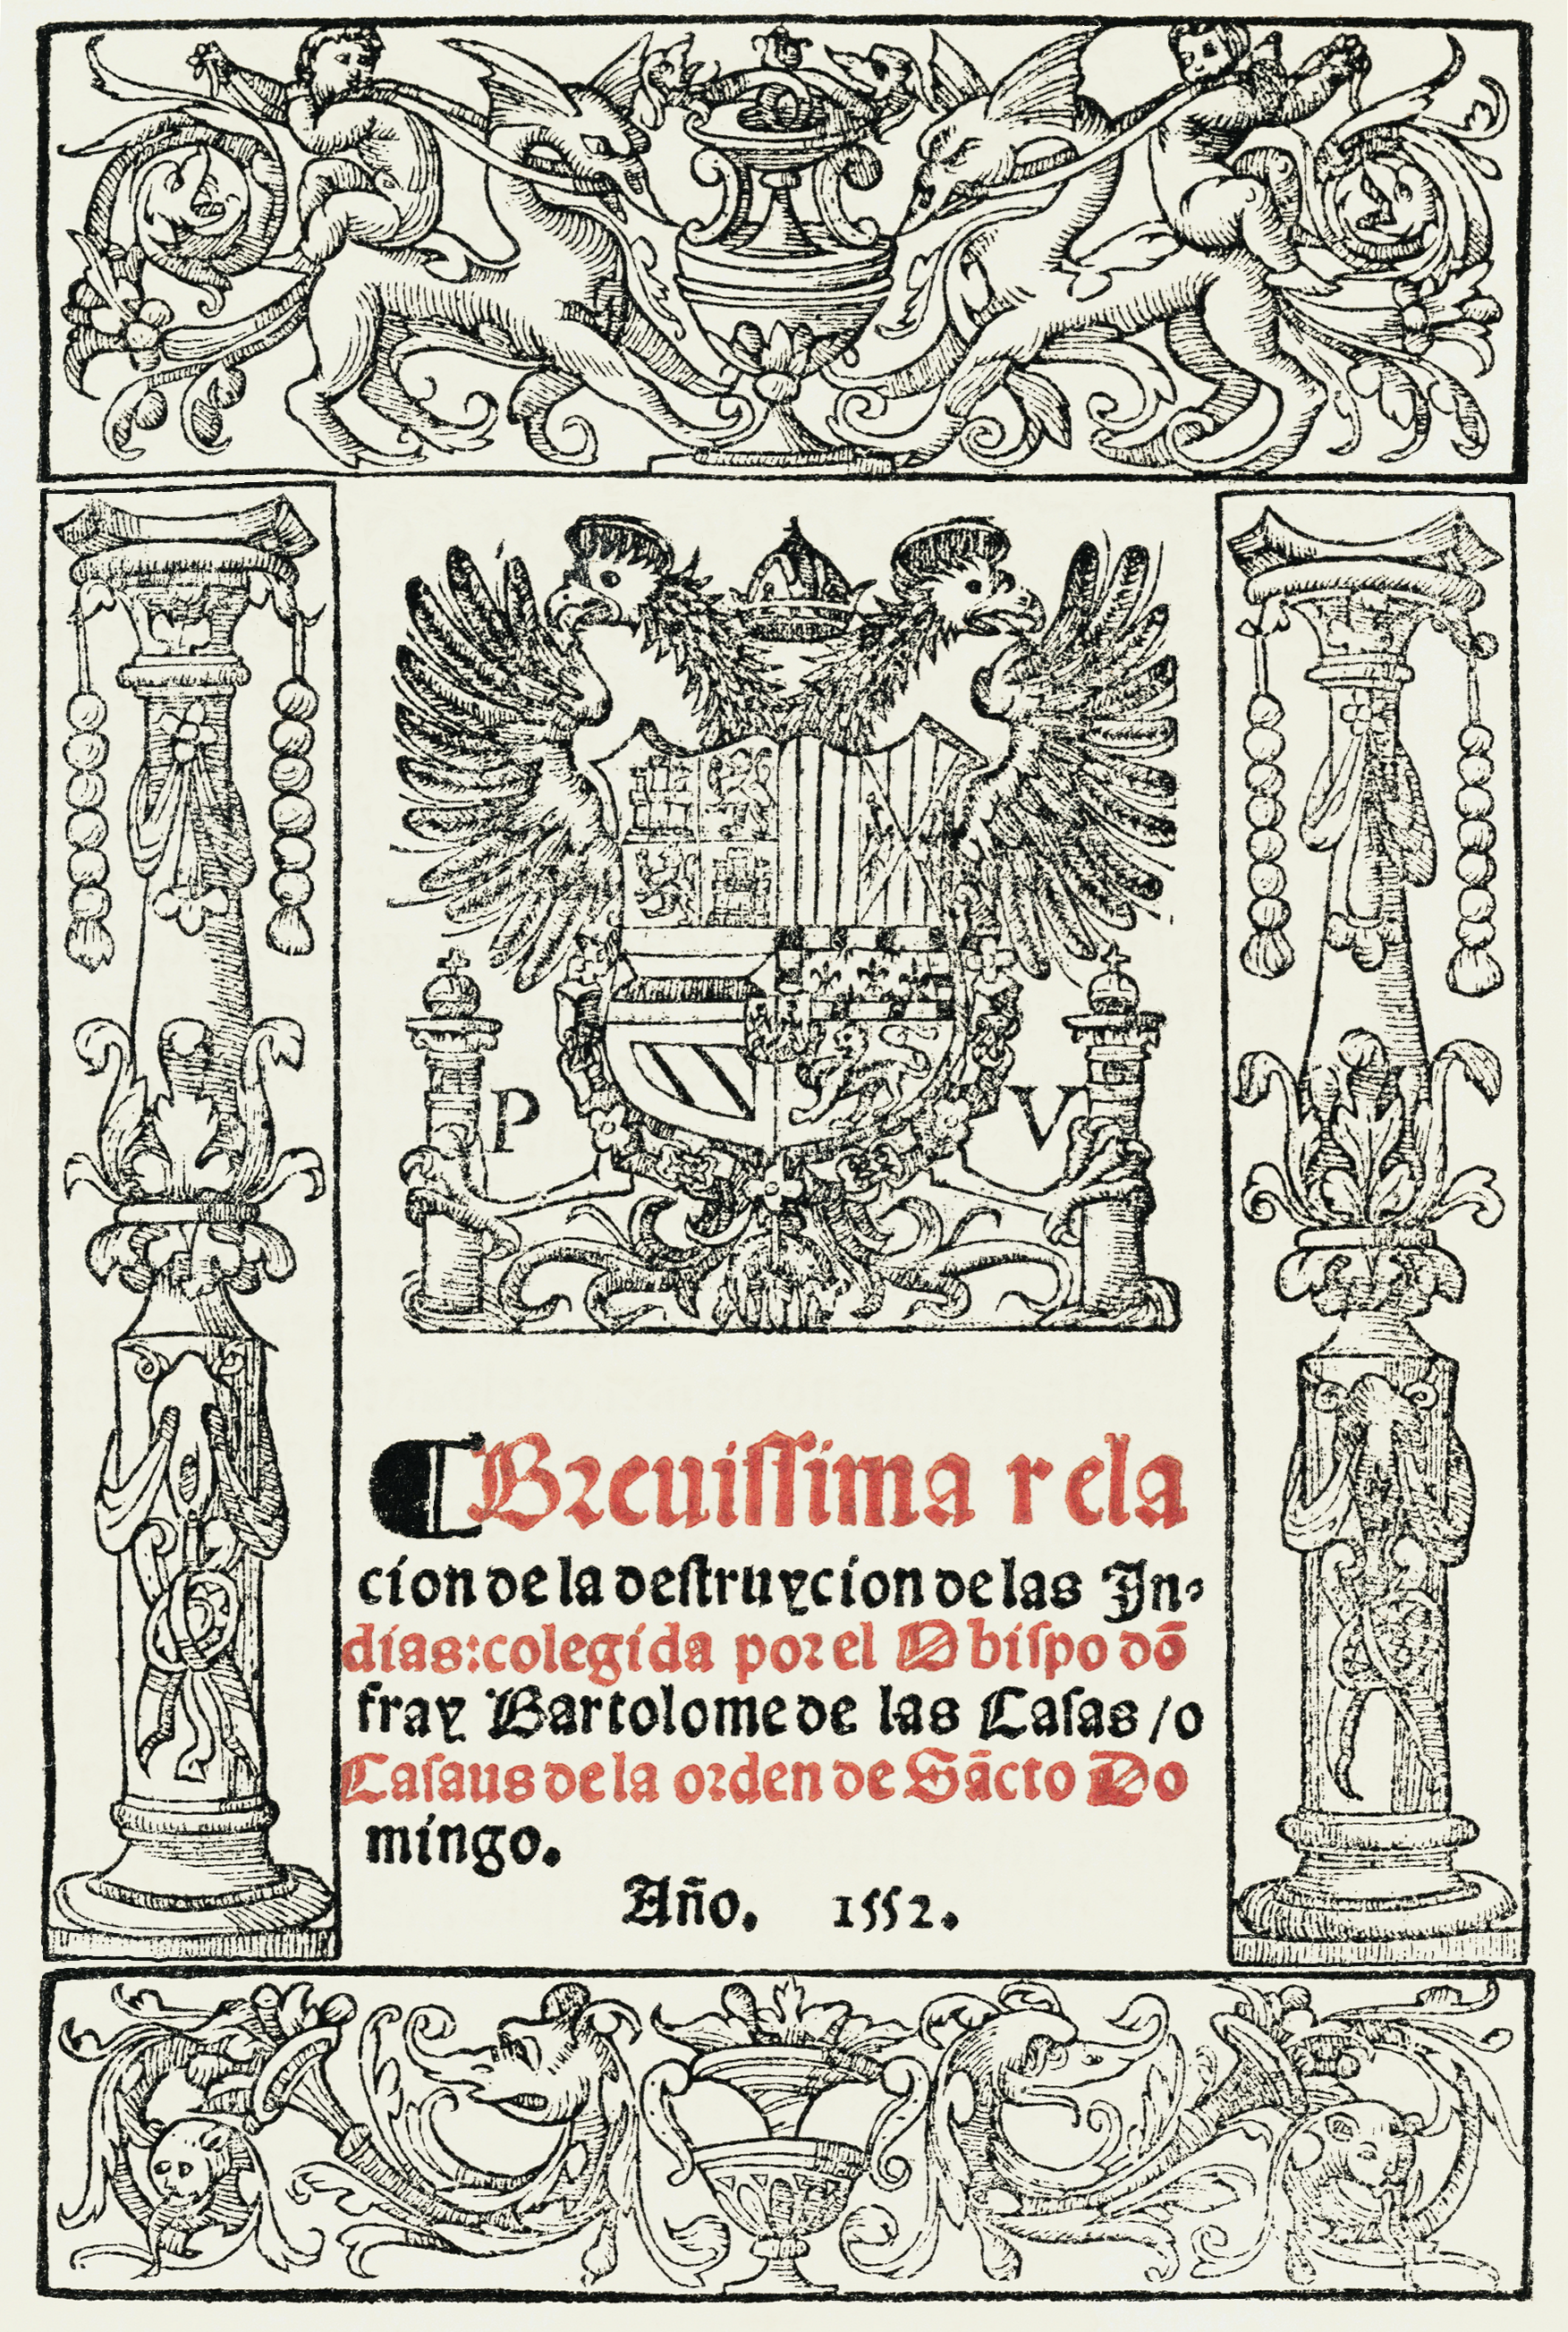 las casas short account of the destruction of the indies Readership at the time than bartolomé de las casas's brevísima relación de la destrucción de las indias (1542 a short account of the destruction of the indies.